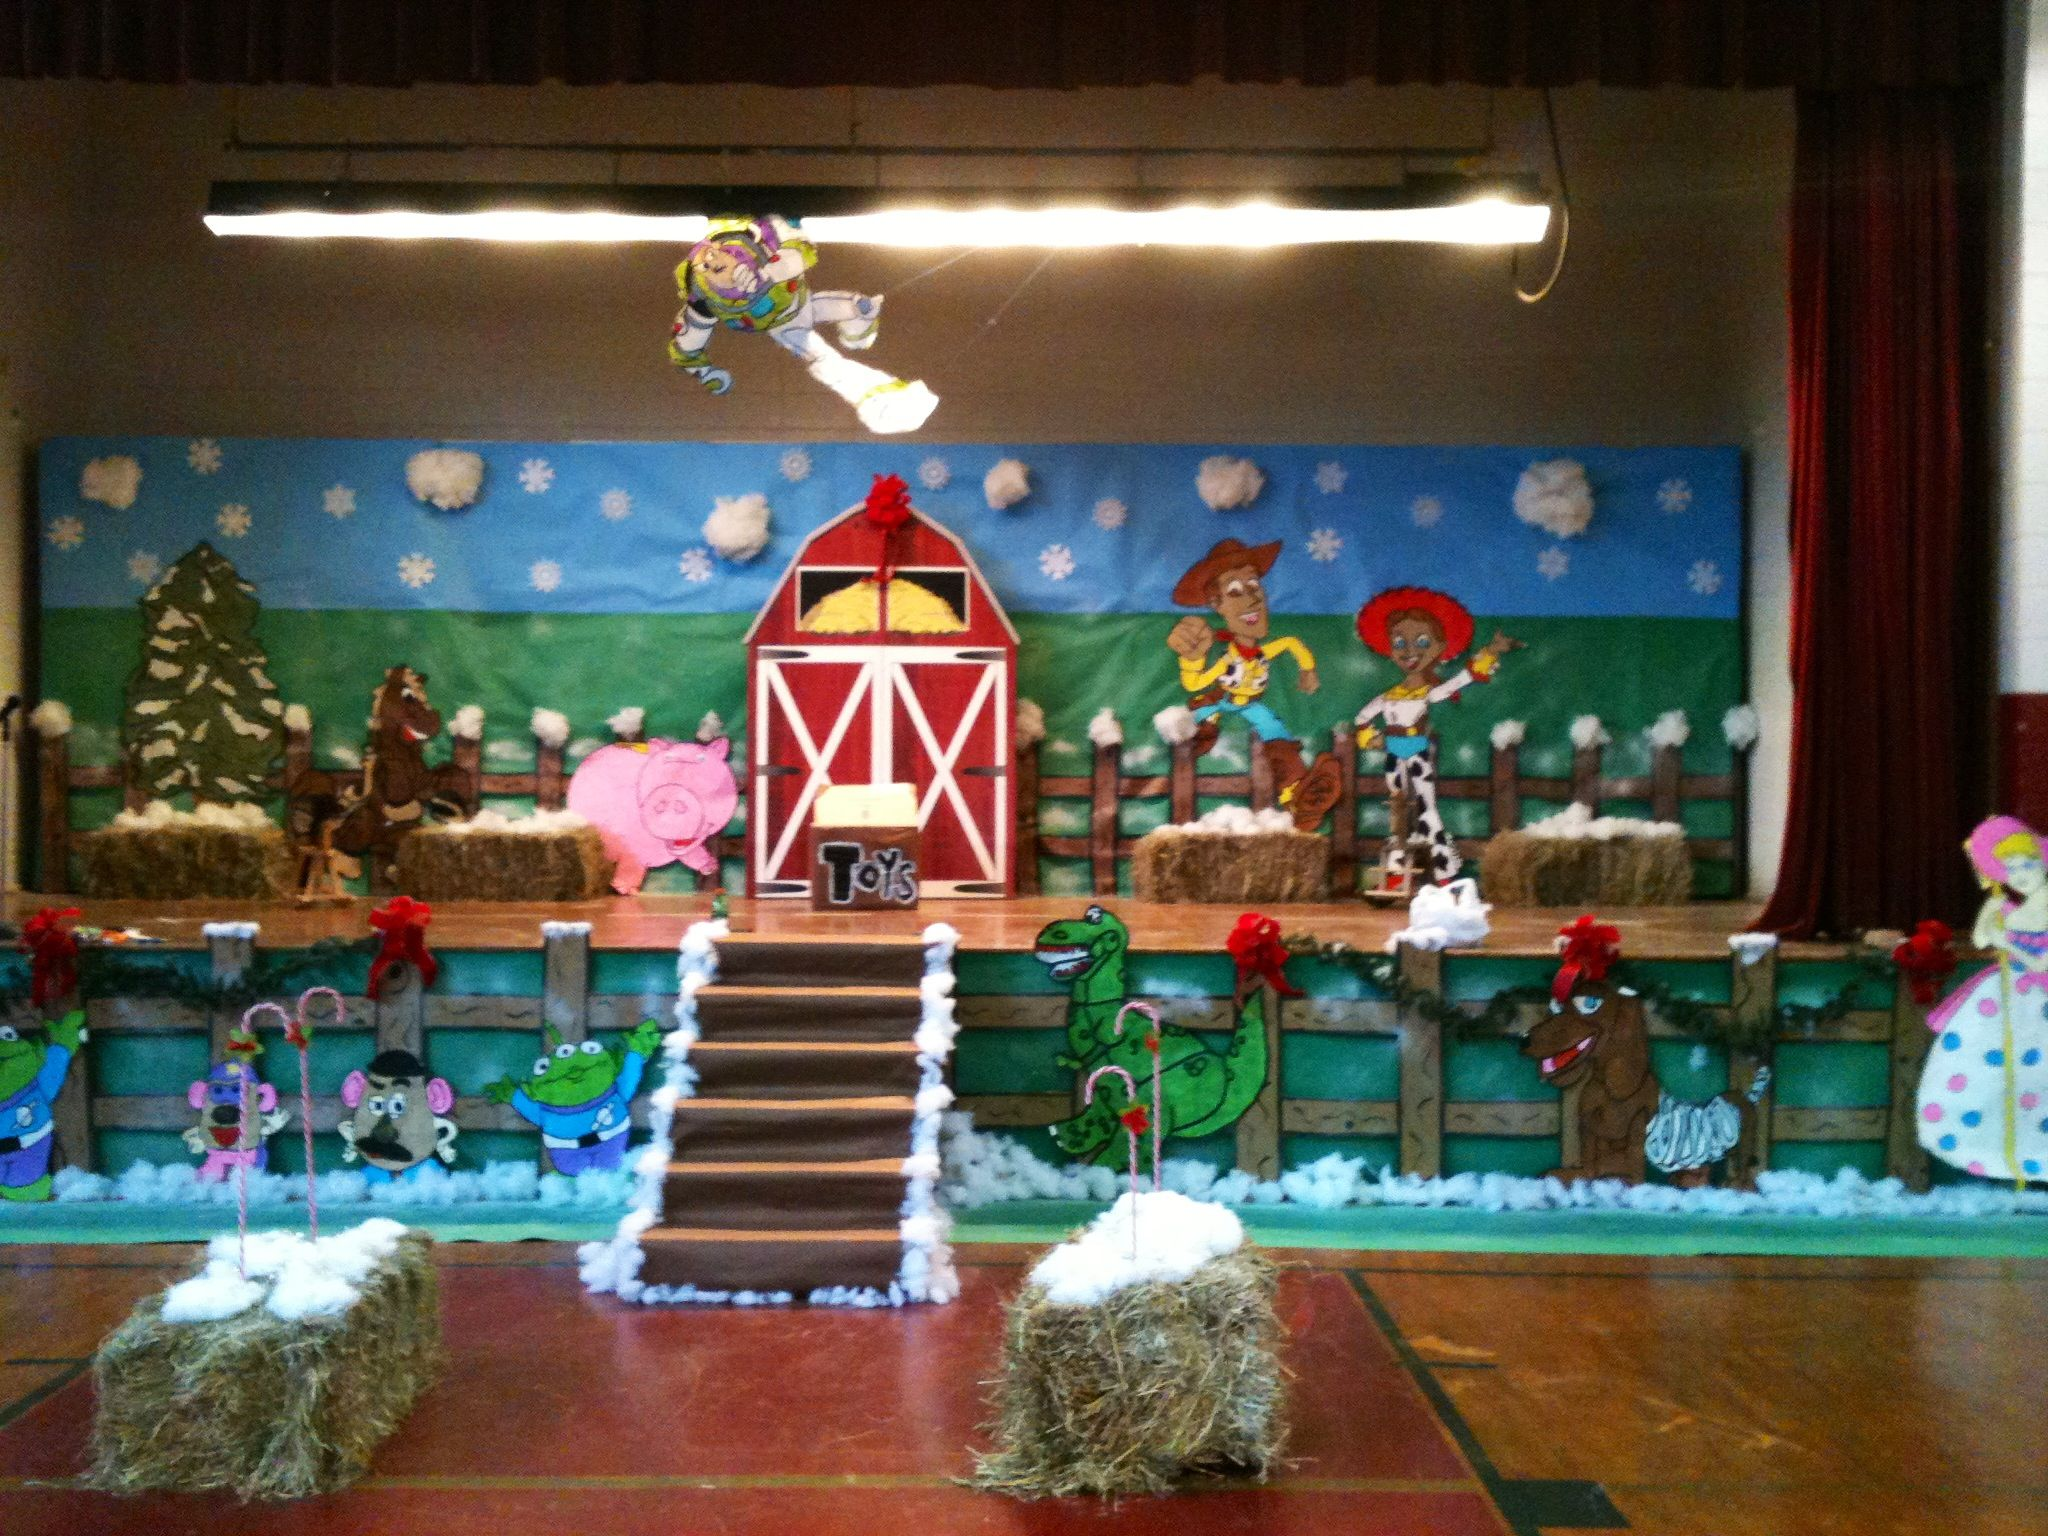 A toy story Christmas play (With images) School